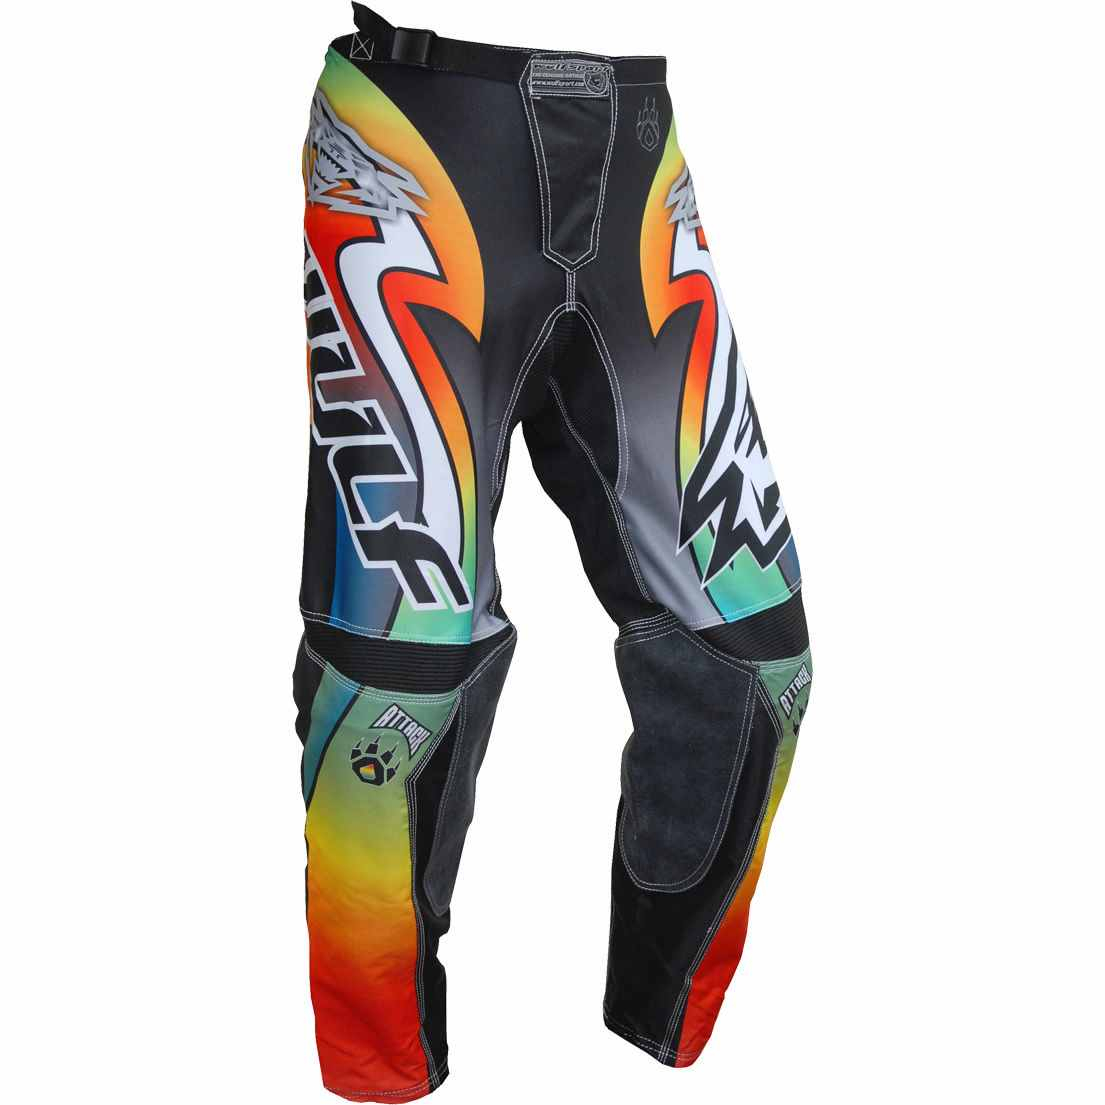 Wulfsport ATTACK Cub Race Pants - Multi Coloured